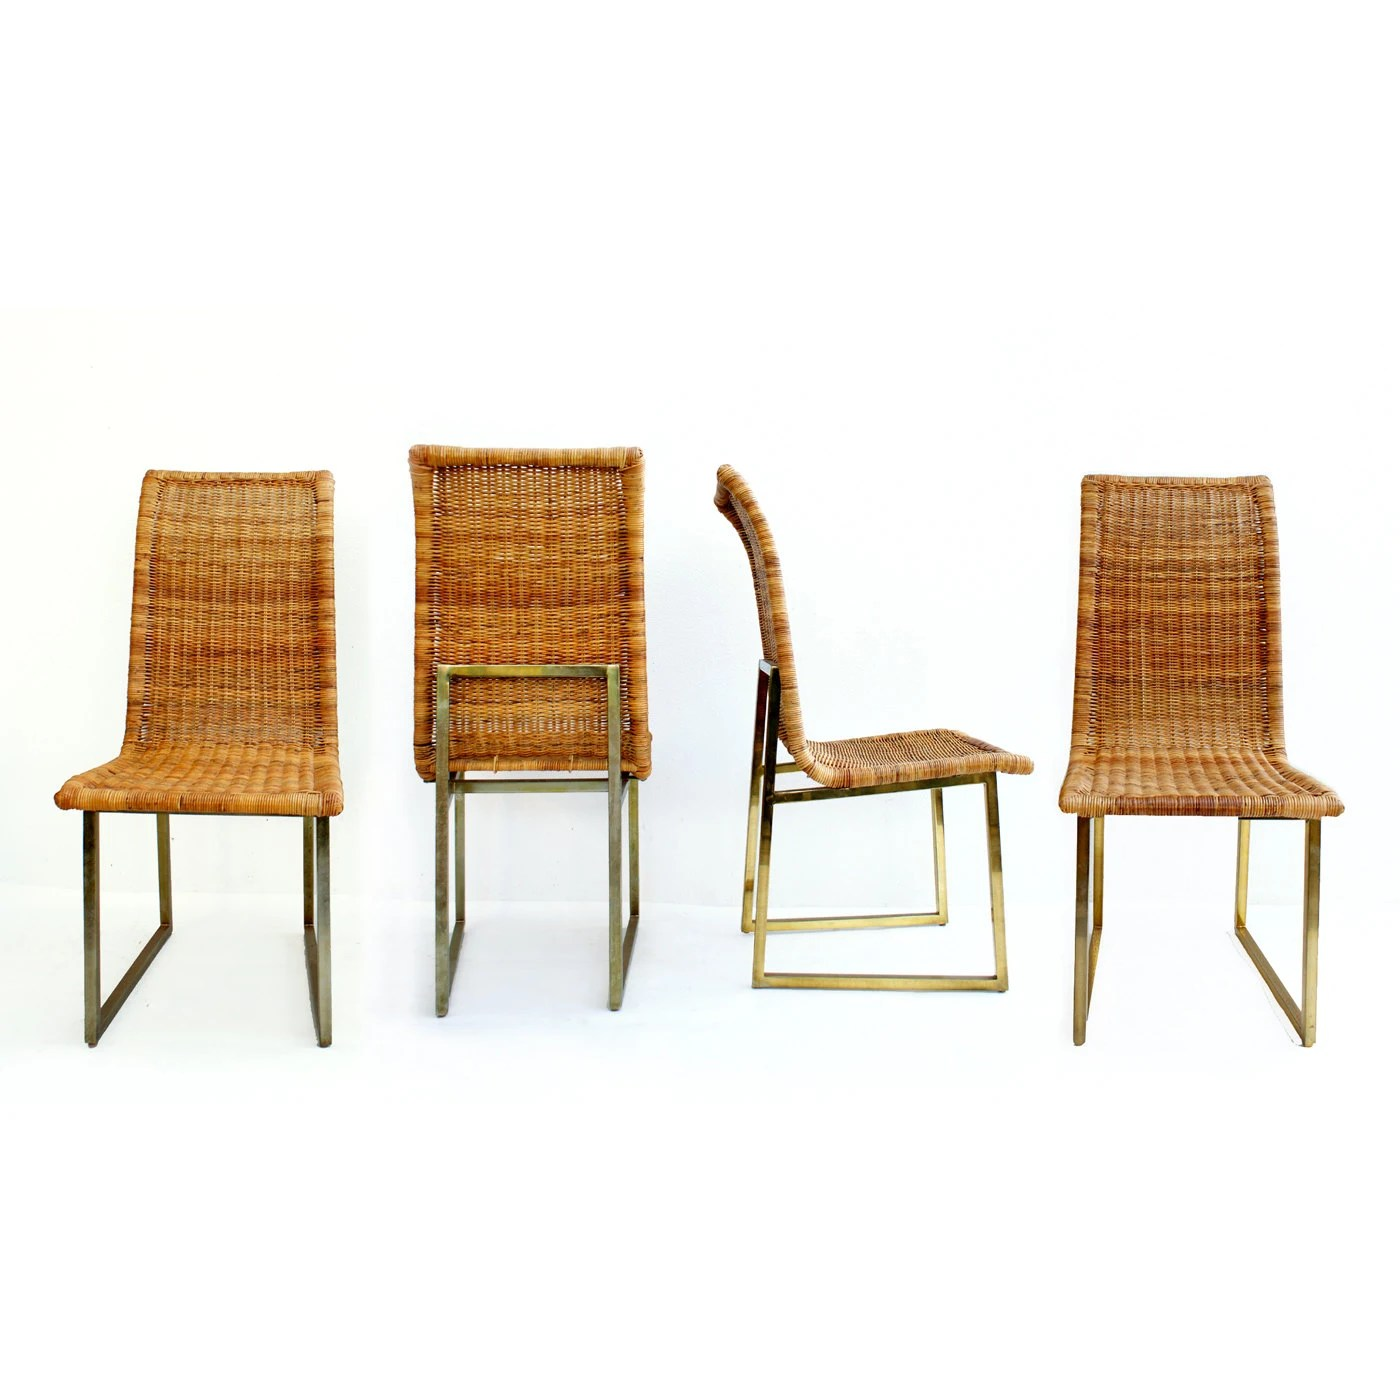 Mid century modern reed brass dining chairs set of 4 for Mid century modern dining chairs vintage